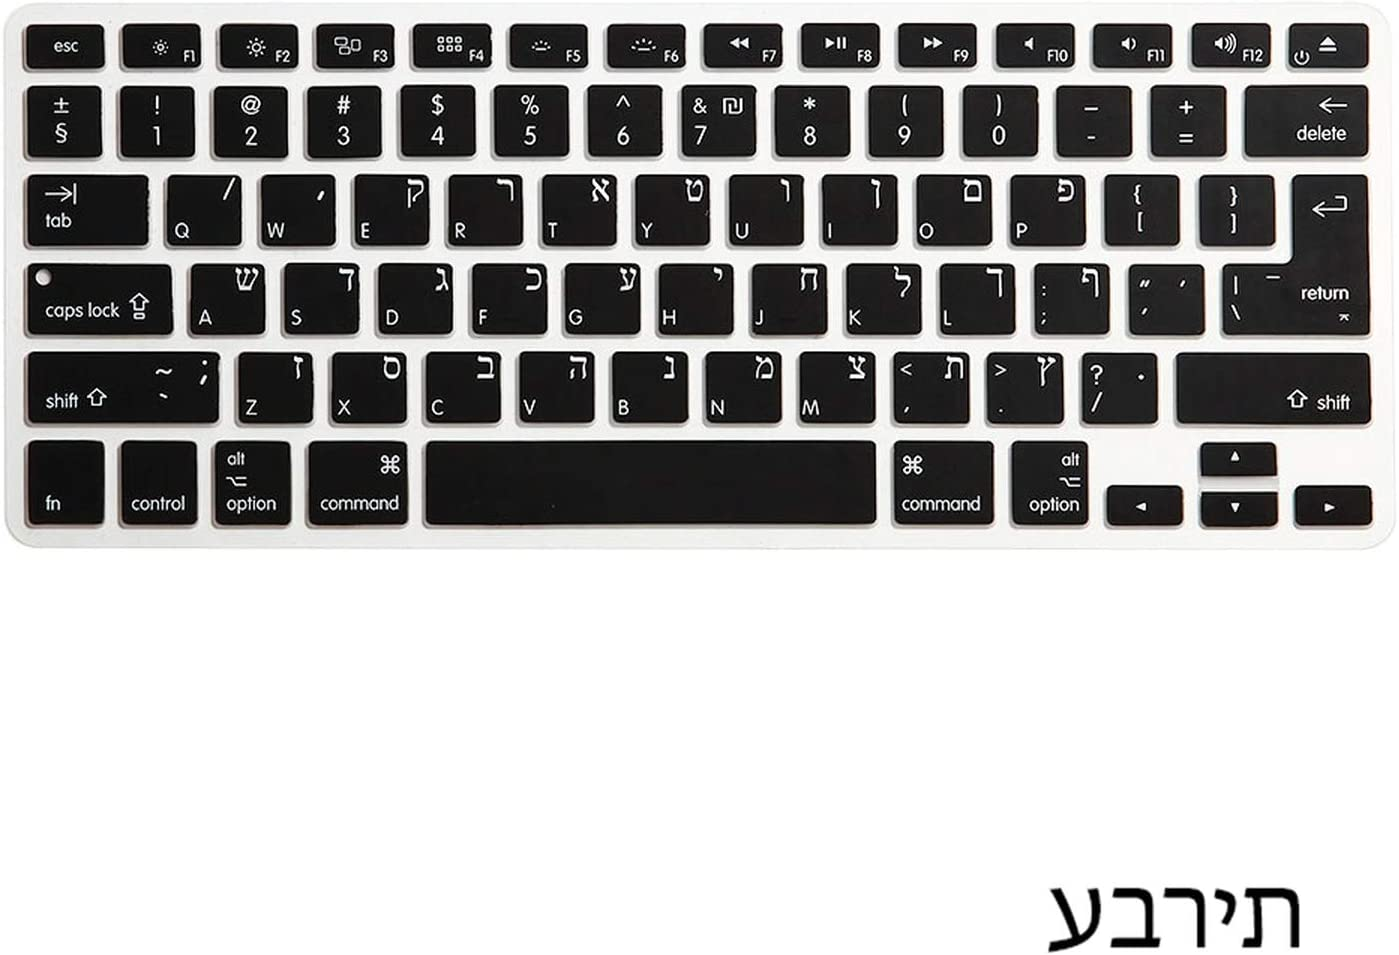 Universal Us EU Silicon Multiple Languages Keyboard Cover for MacBook Pro 13.3 Air 13 15 Retina Inch Russian Protective Film,Spain